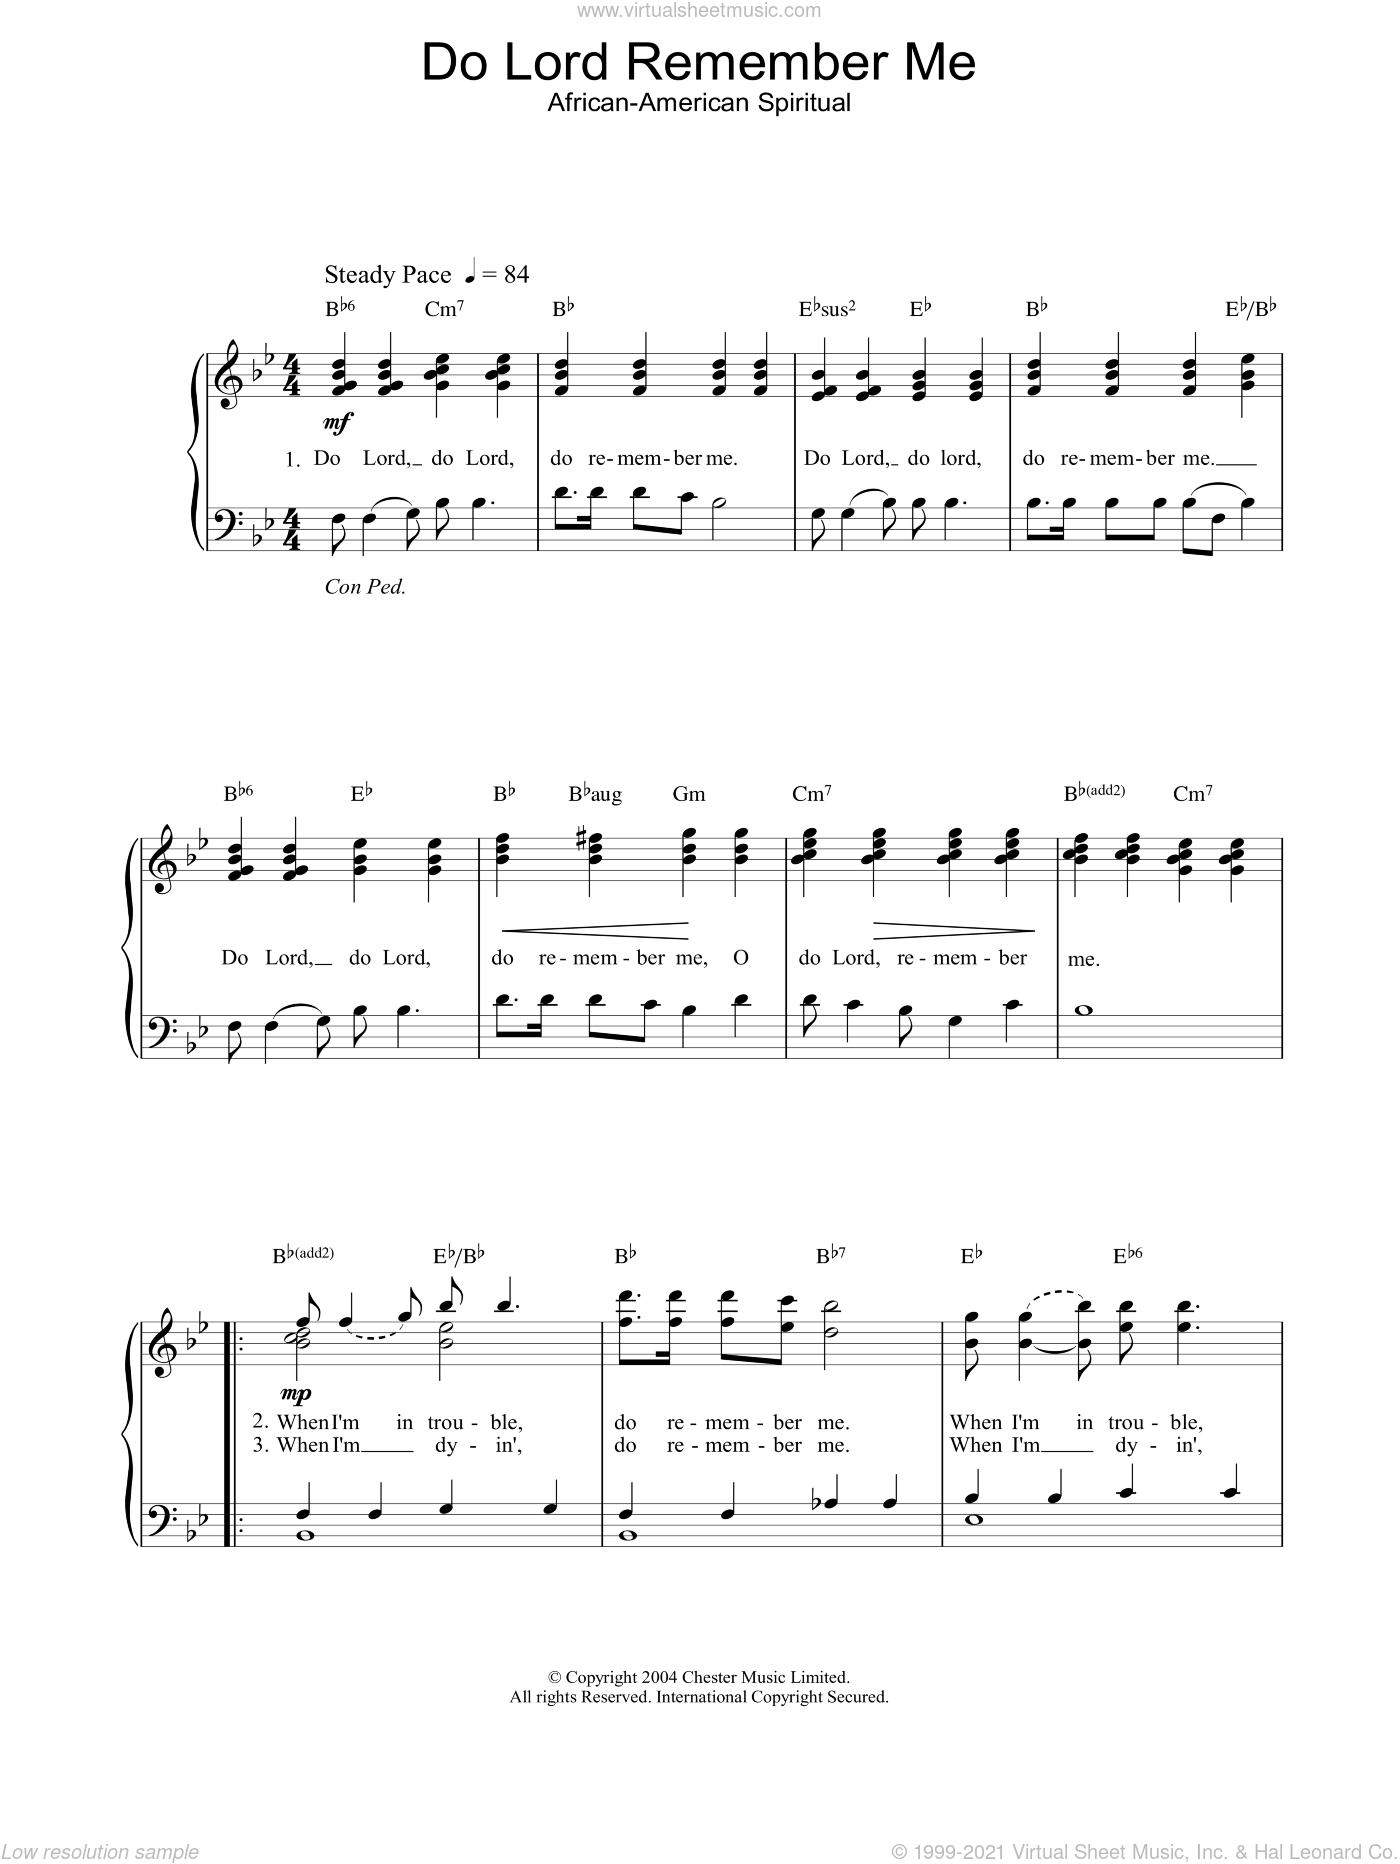 Do Lord Remember Me sheet music for piano solo, easy. Score Image Preview.